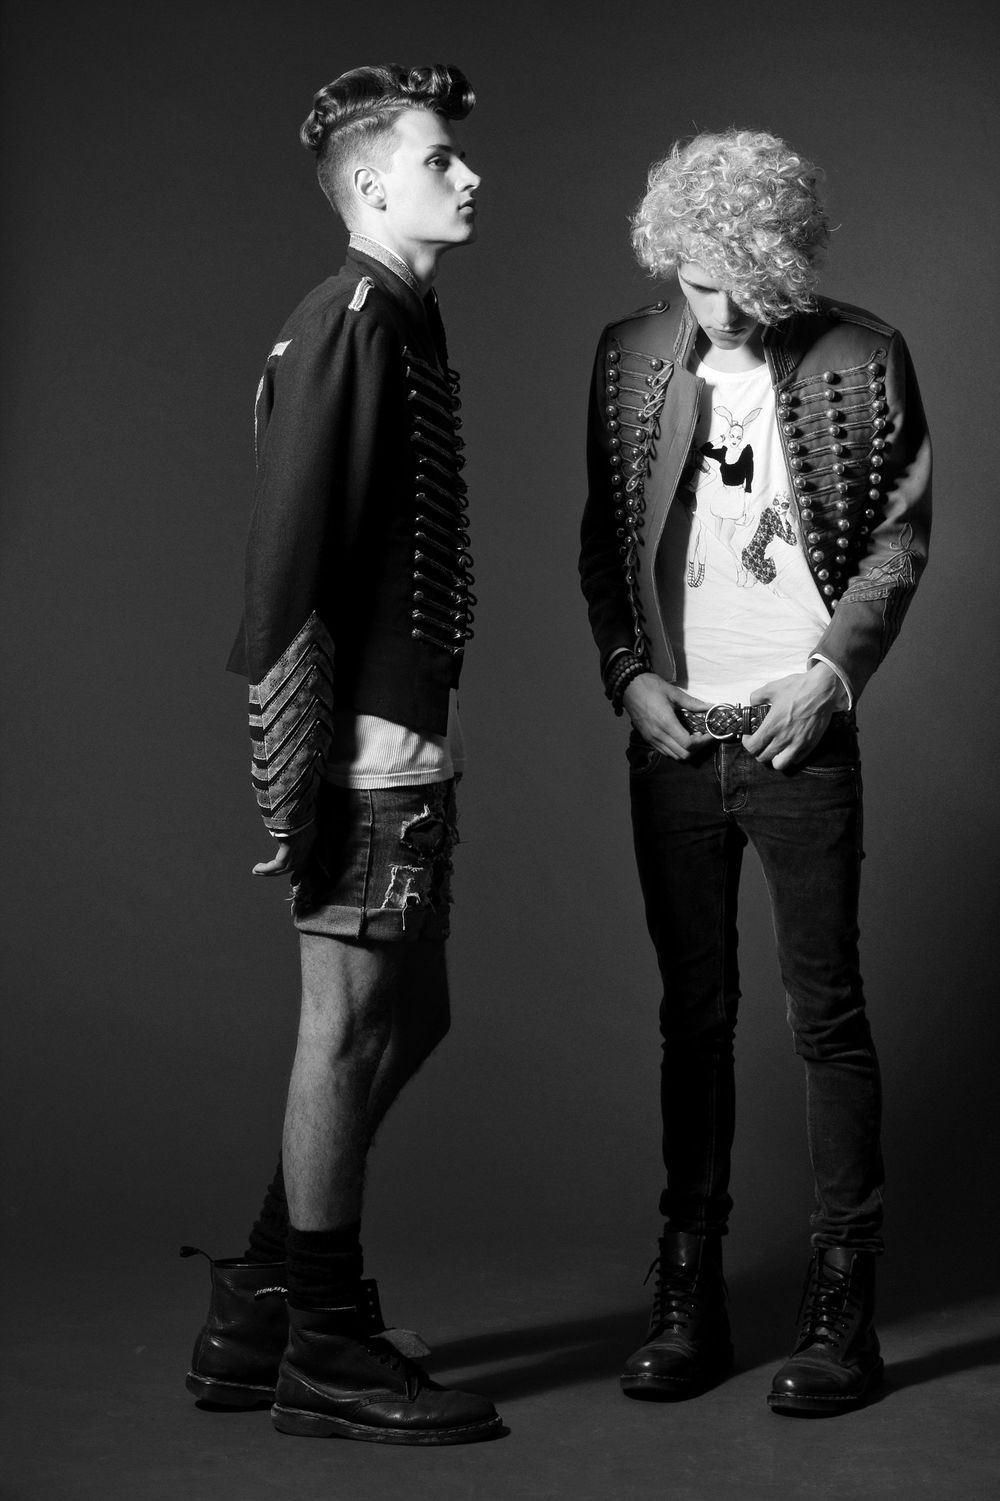 models  Mike &  Yannik   hair   Marco Arena & Team   make-up  Ira Möller  styling   Hair-Arena  / Corinna Saric